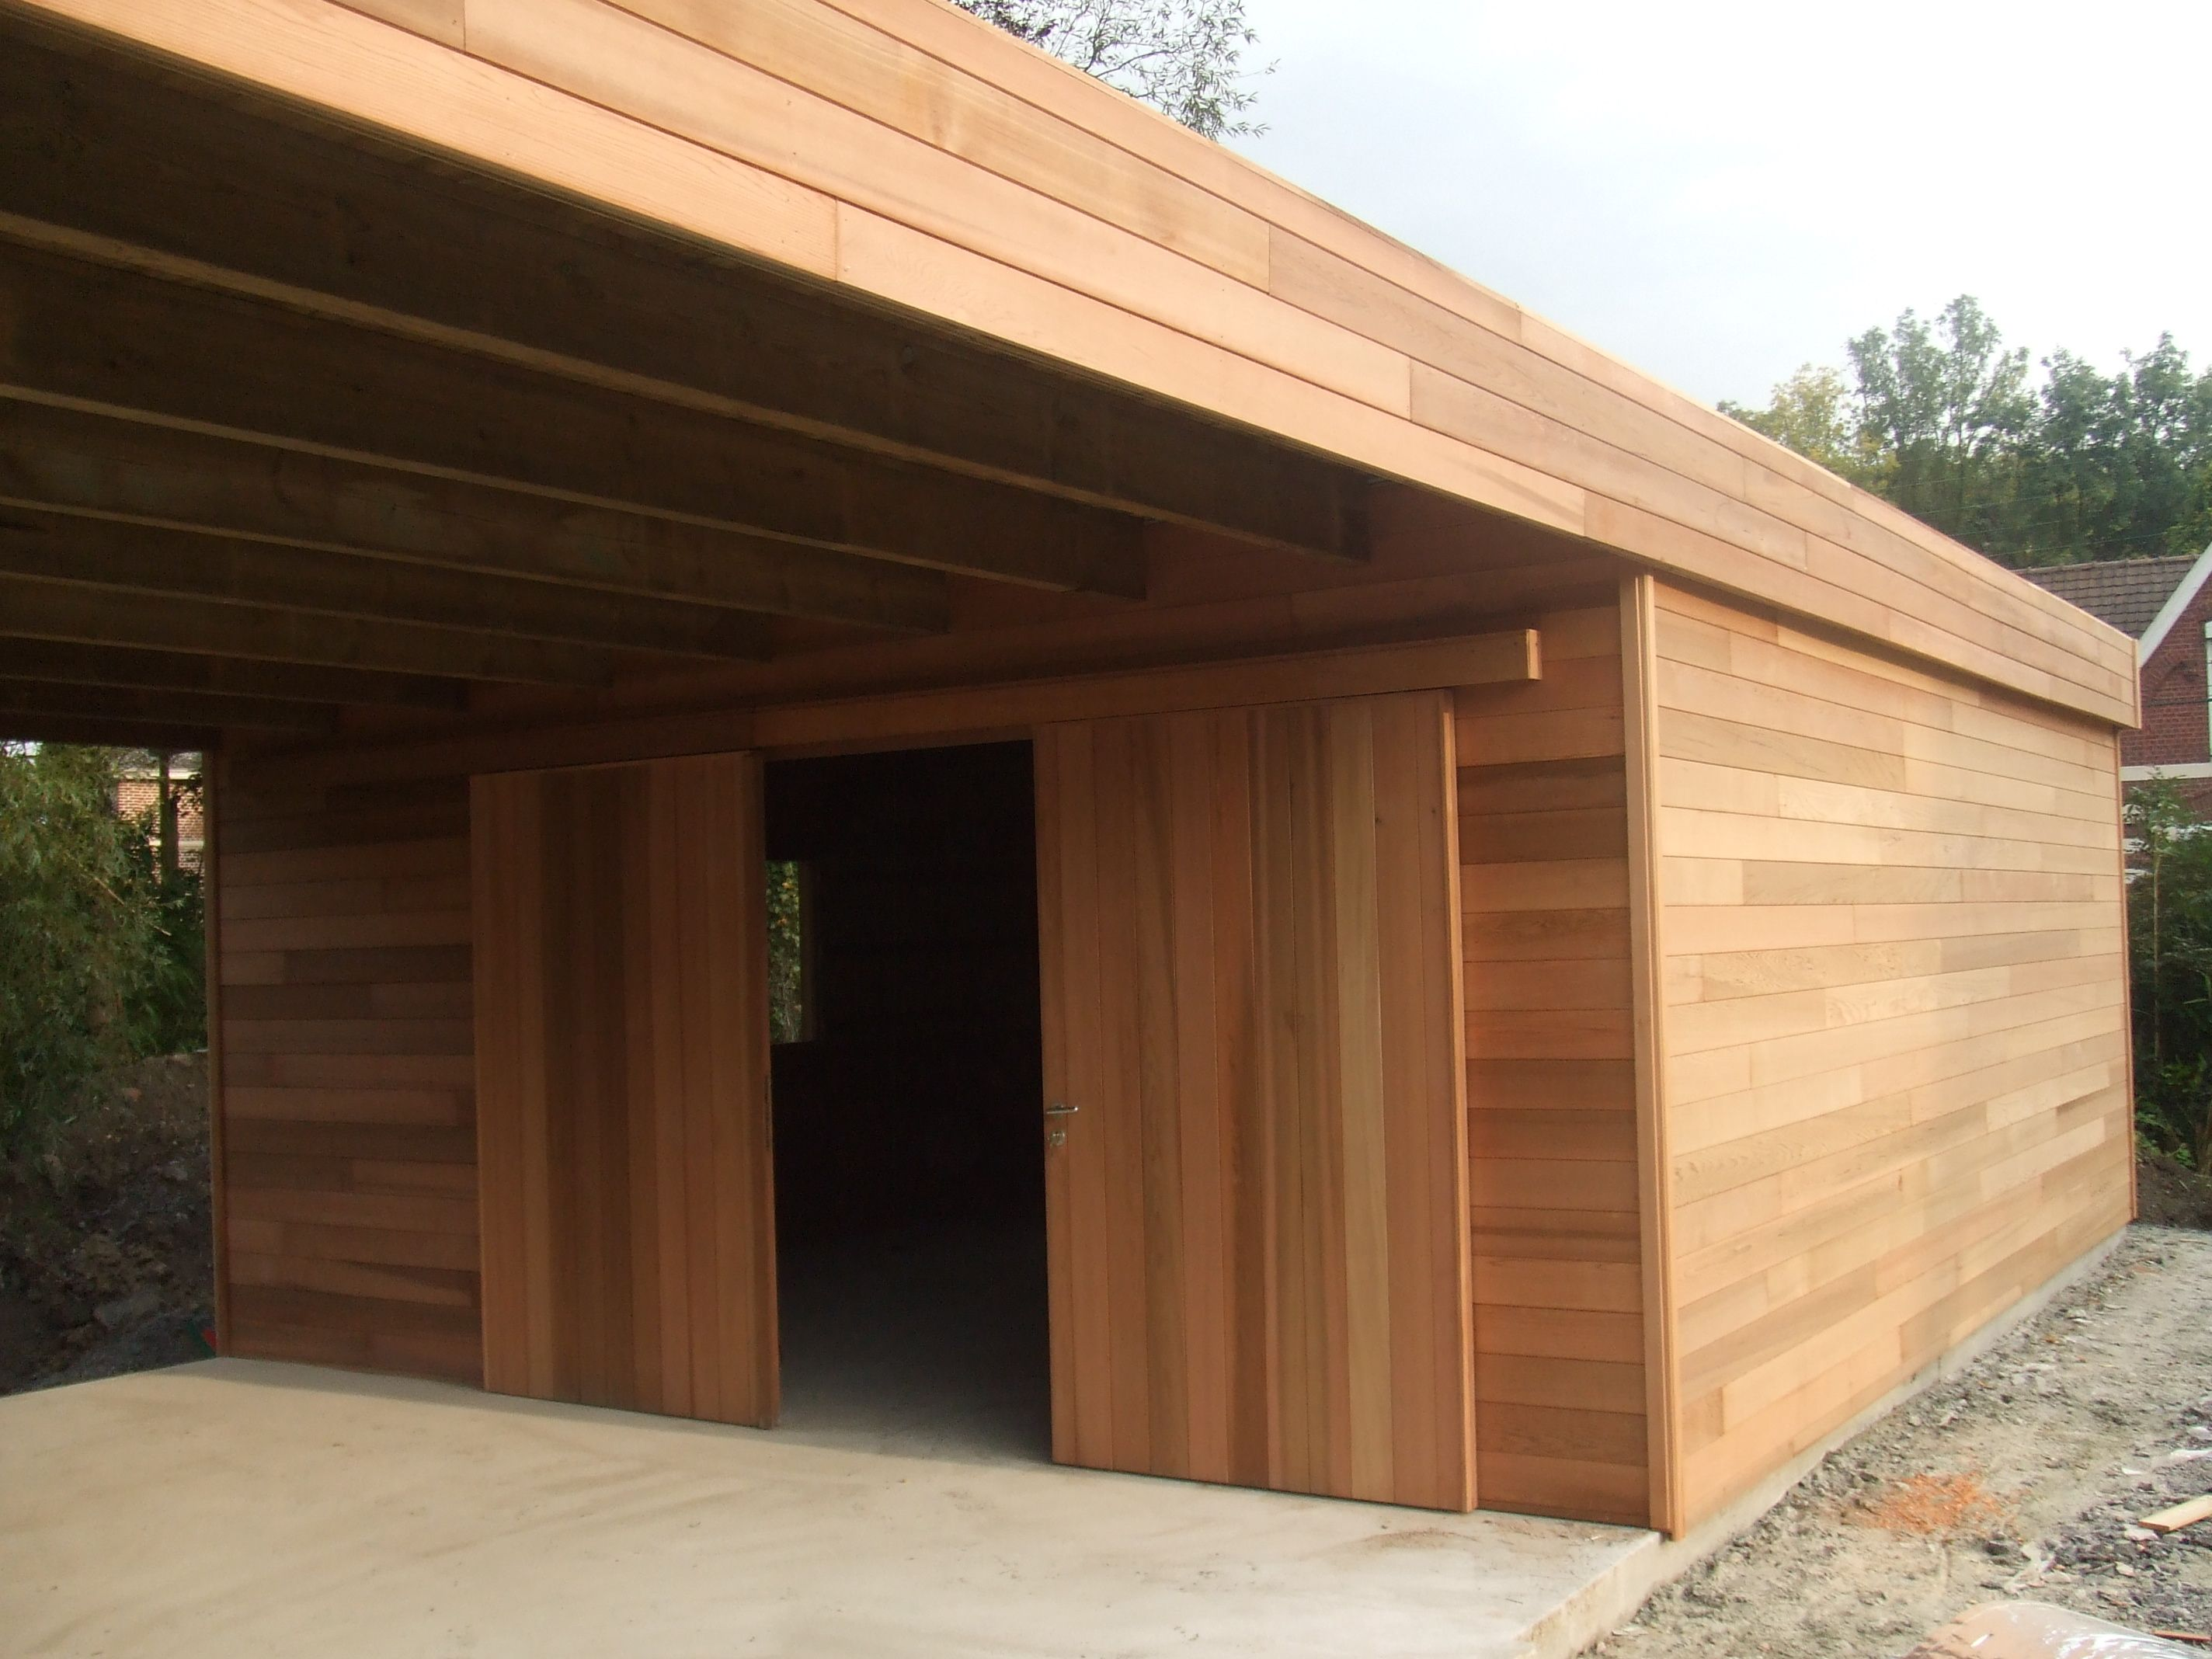 Garage carport en Red cedar Carport bois, Garage bois et